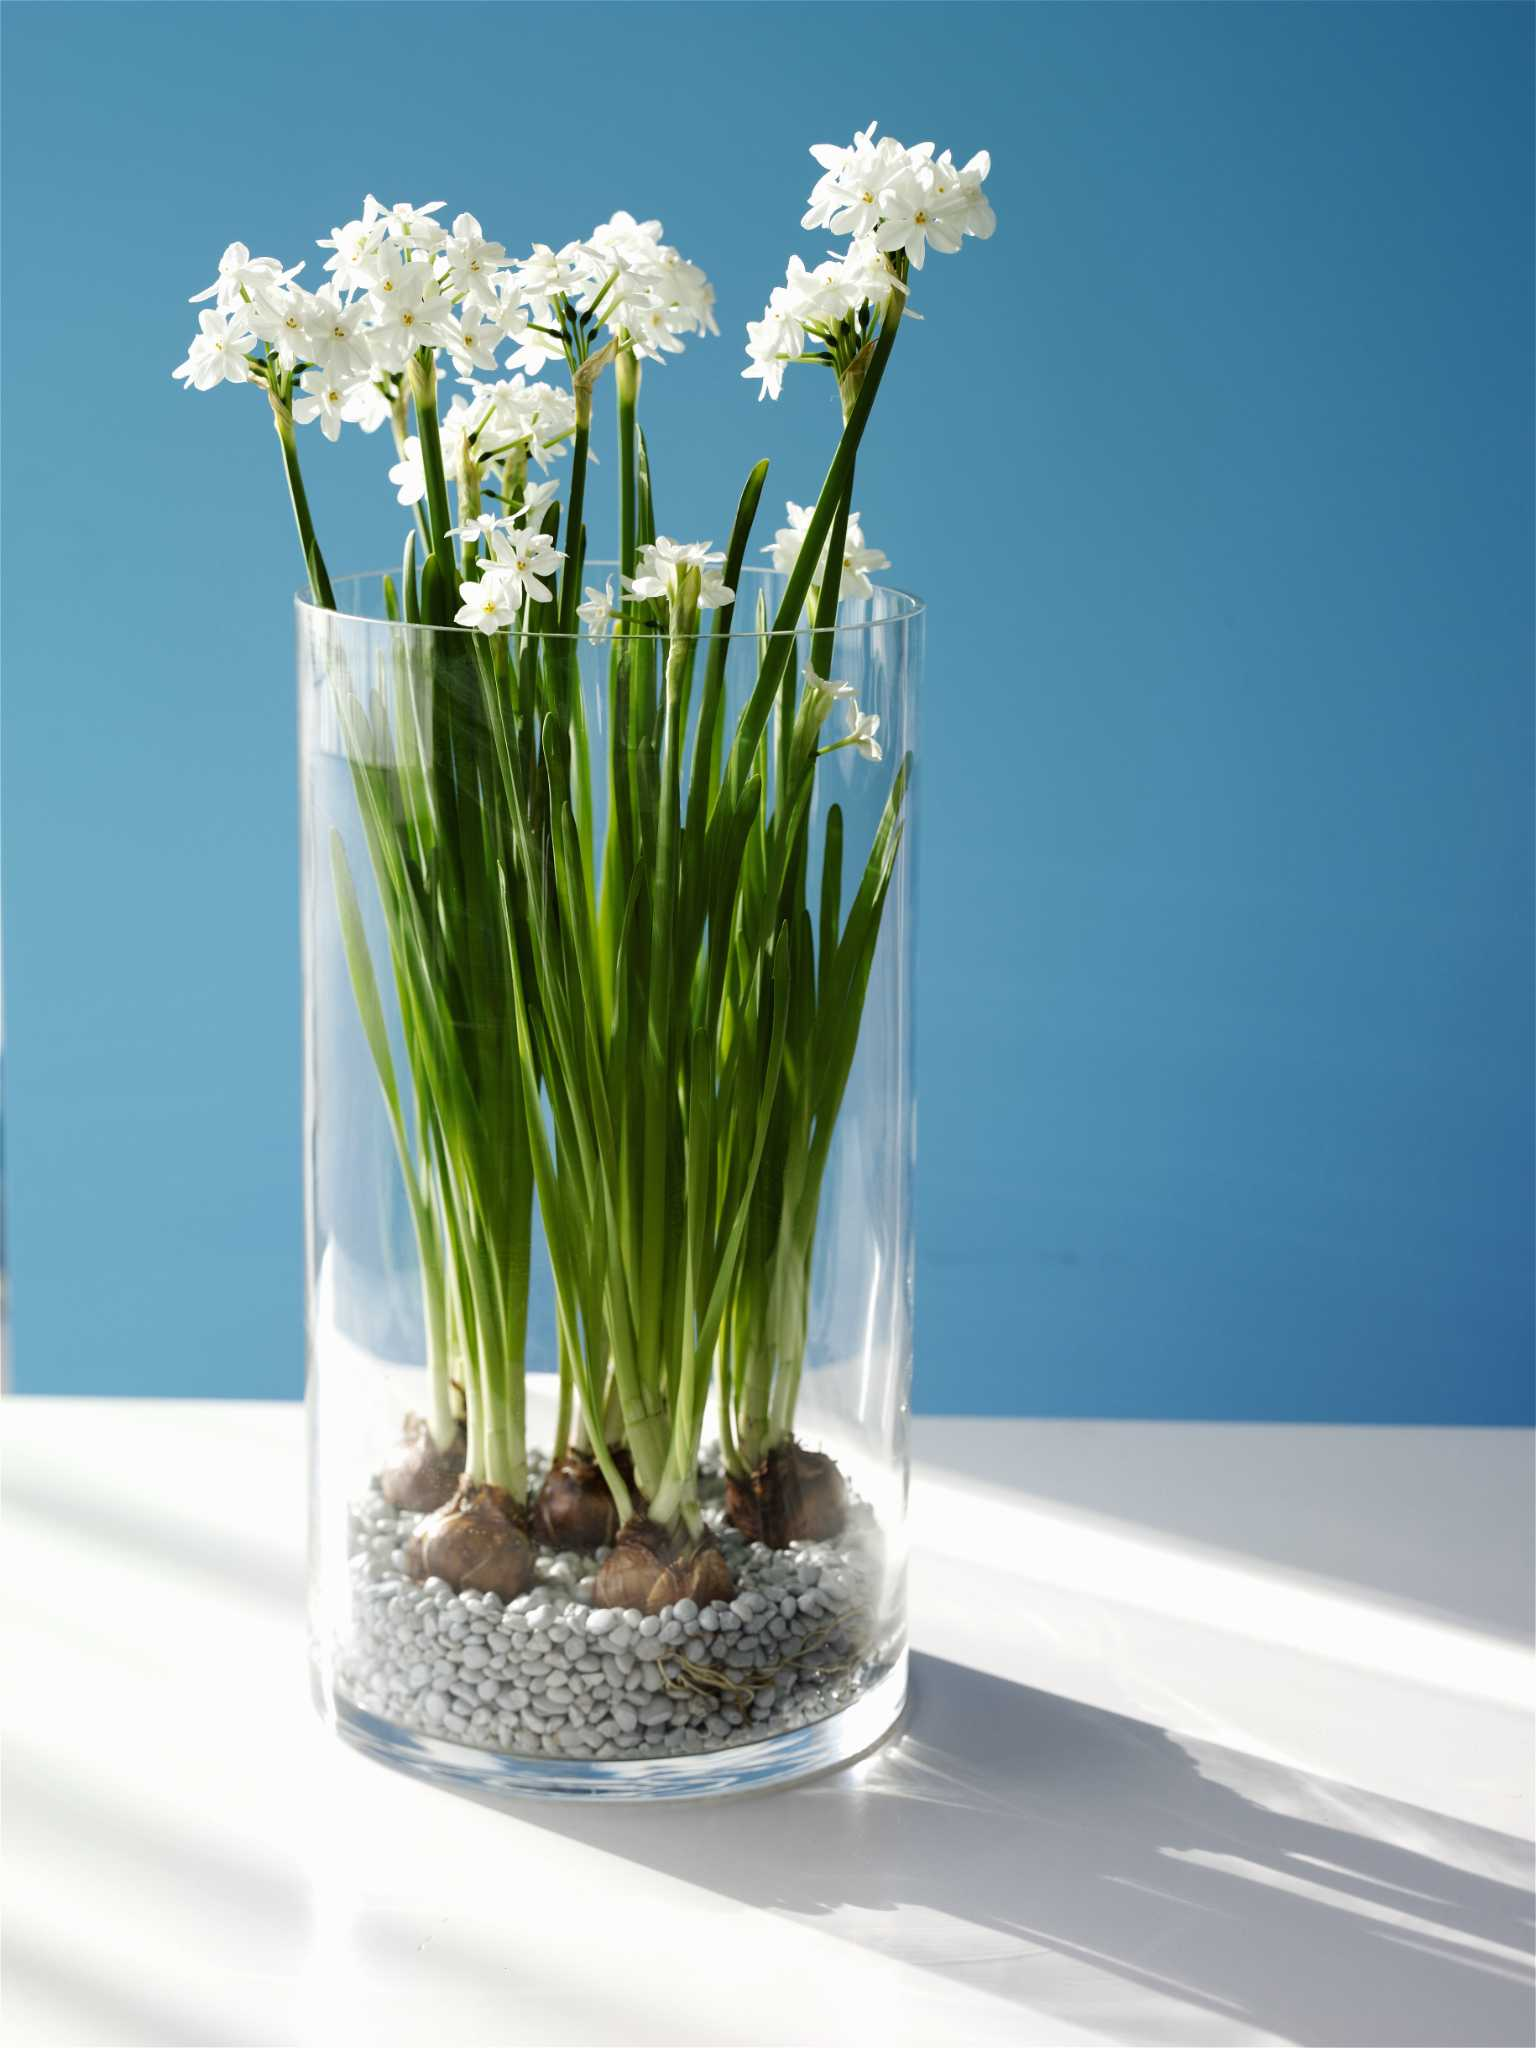 Paper Whites Offer Winter Pick Me Up Houstonchronicle